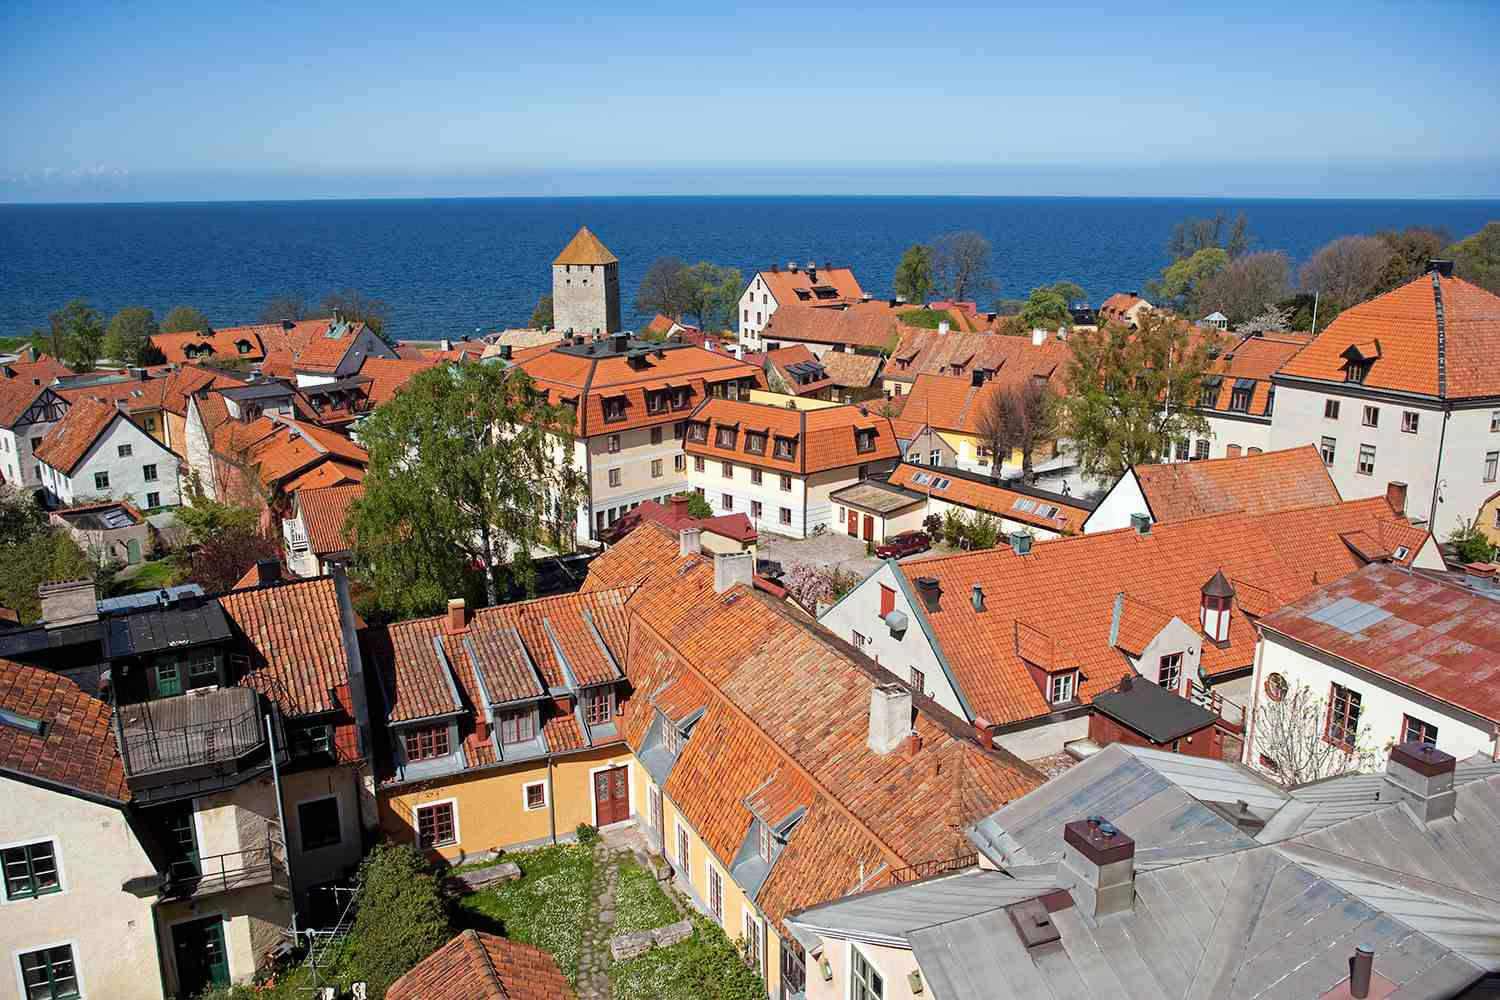 Sweden, Island of Gotland, Visby. Medieval street plan and buildings.